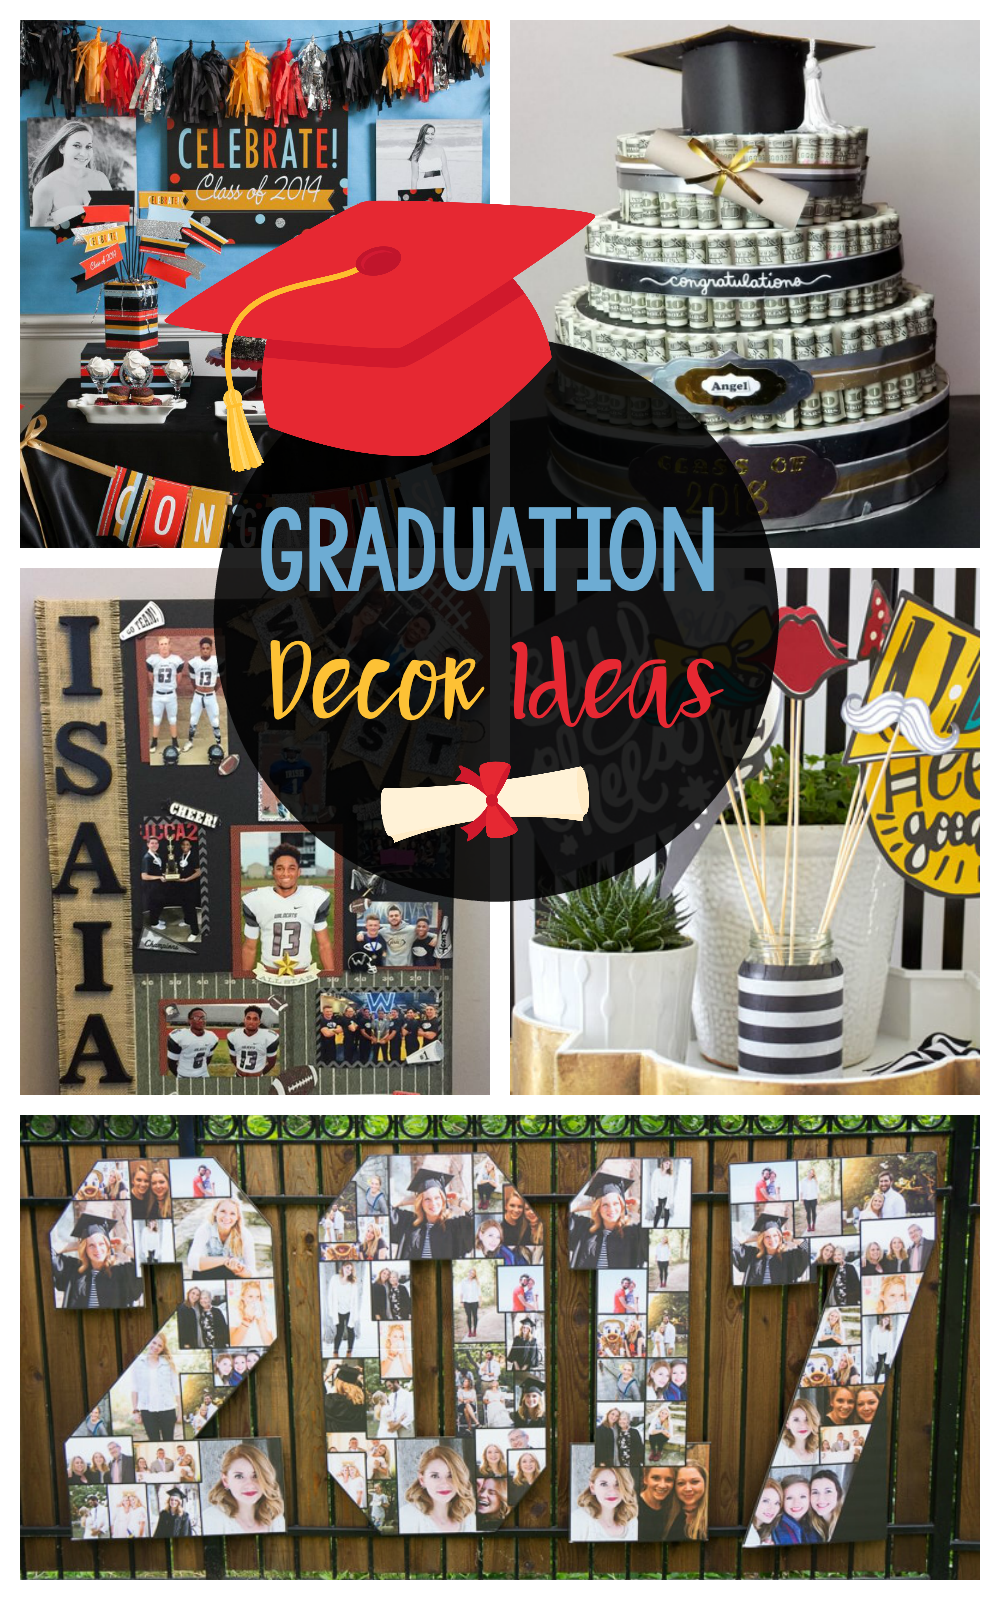 DIY Graduation Decorations and Ideas-Fun centerpieces, banners, and photo memory boards for your graduation party! #graduation #gradparty #graddecor